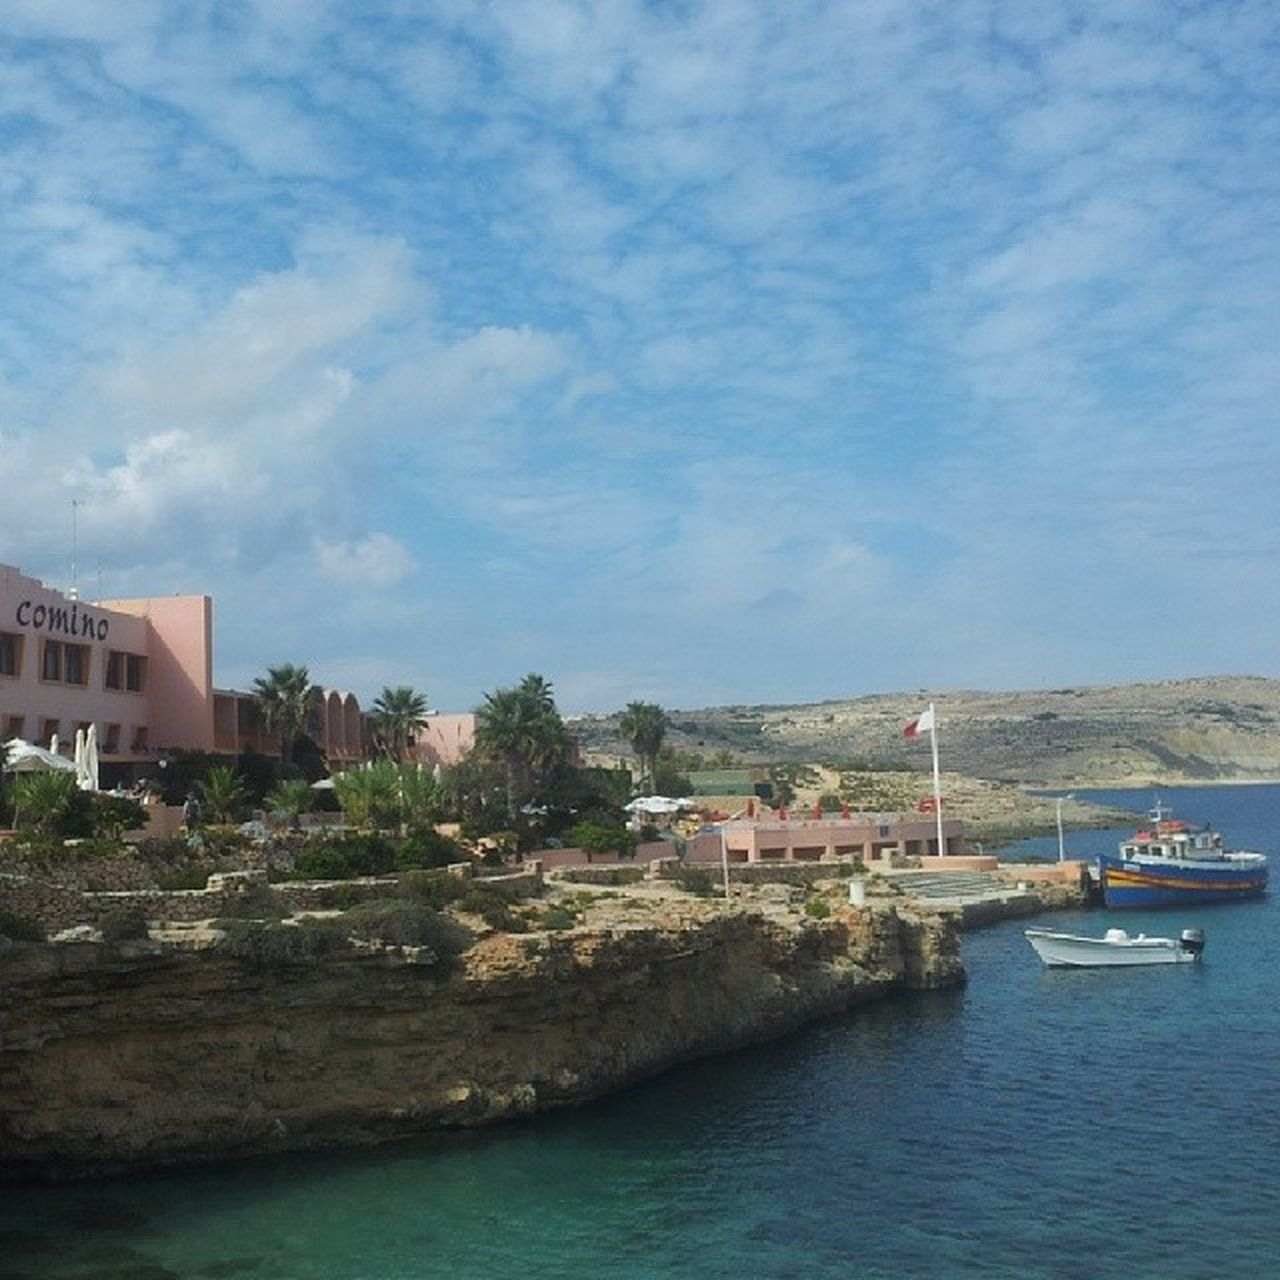 Comino Visitcomino Cominoboat Sky cloud clouds bluesky bluewater